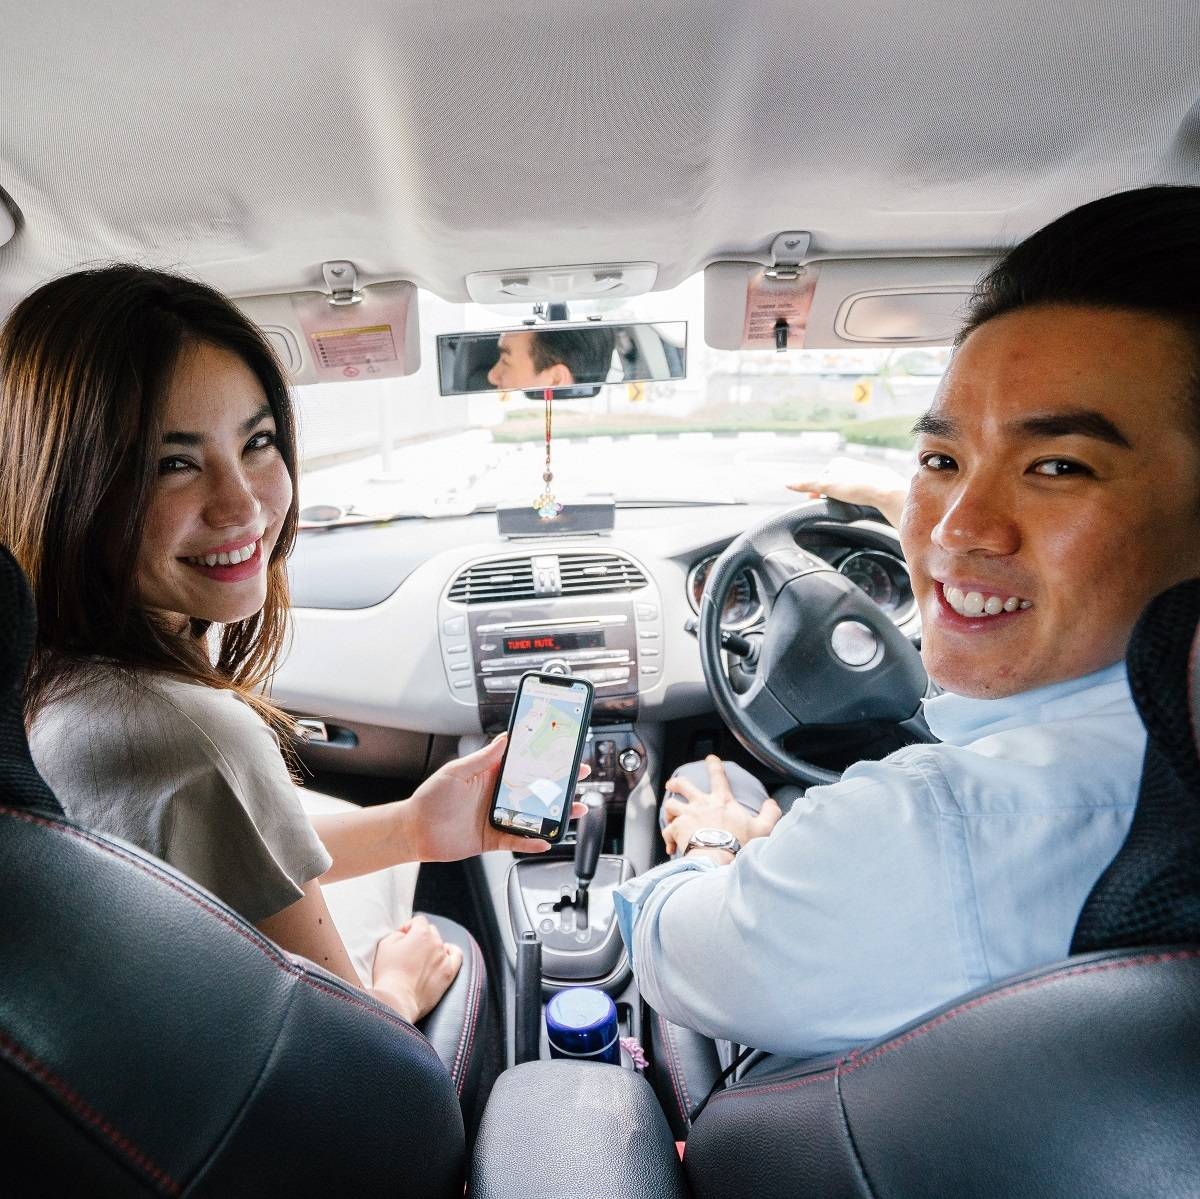 A lady and a man sharing a ride as part of a carpooling scheme